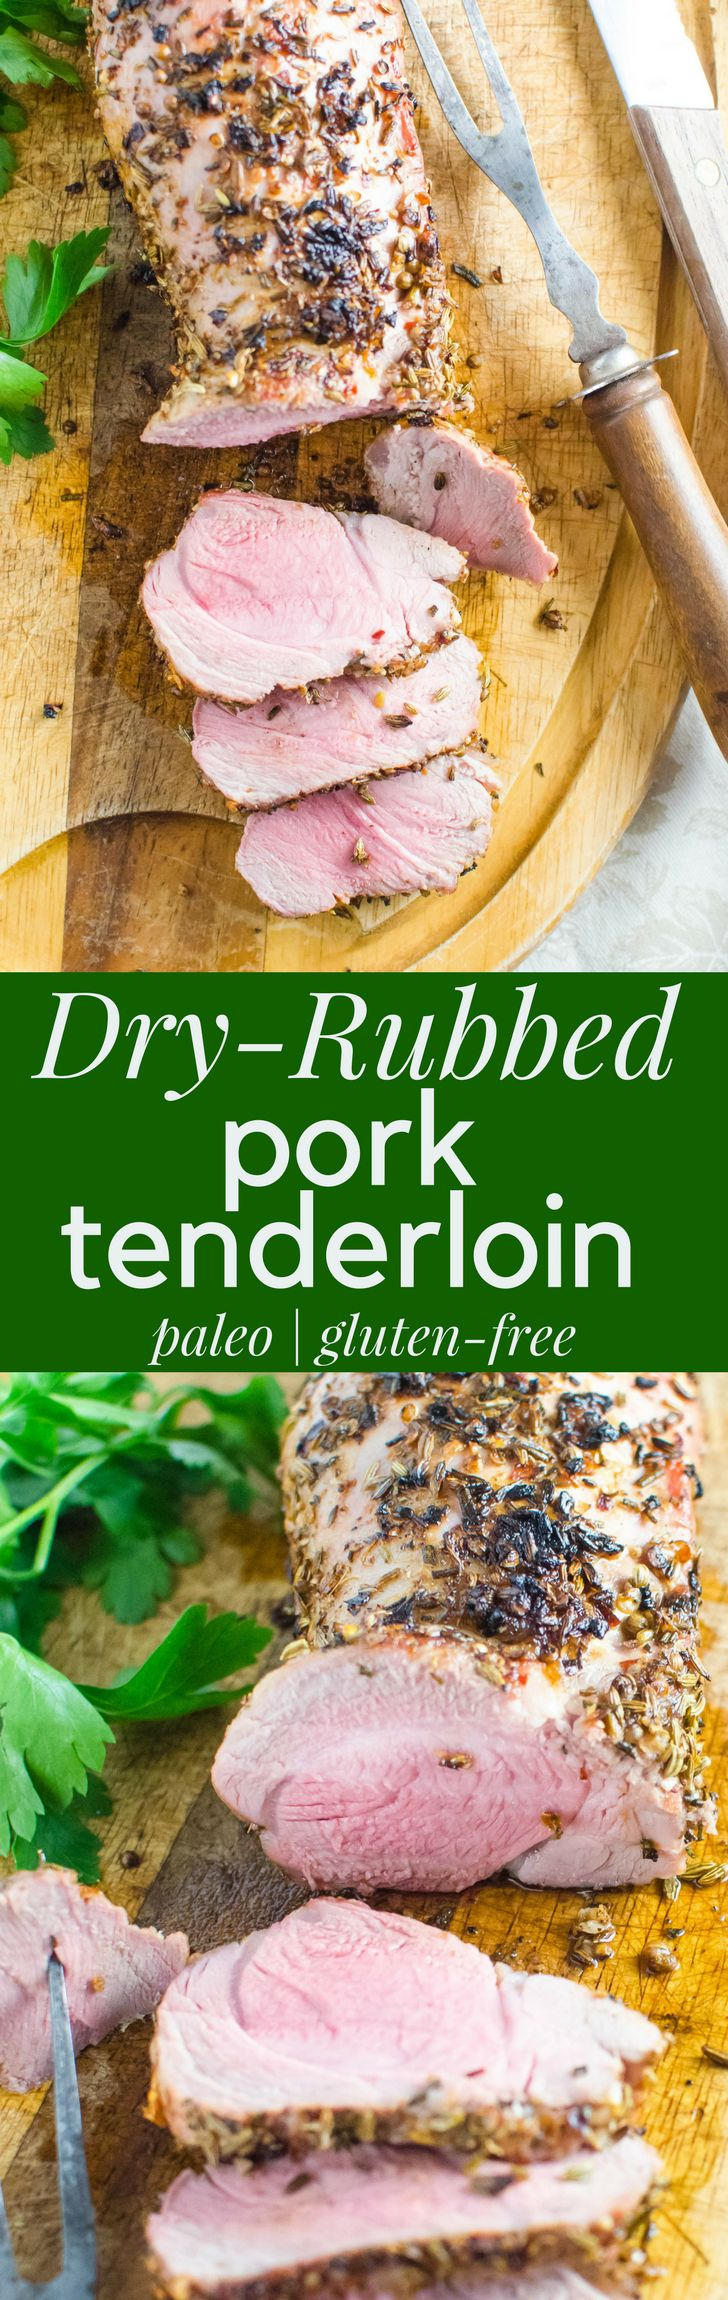 This Dry-Rubbed Pork Tenderloin is the easiest and best recipe for quick pork dinners. The flavorful dry rub with coriander, fennel, red pepper flake and rosemary makes this meal healthy and flavorful. #pork #porktenderloin #tenderloin #grilledpork #porkrub #dryrub #fennel #rosemary #garlic #healthydinners #healthyporkdinner #quickdinners #paleo #lowcarb #glutenfree #bestporktenderloin #porktenderloinrecipe #dryrubrecipe #redpepperflake